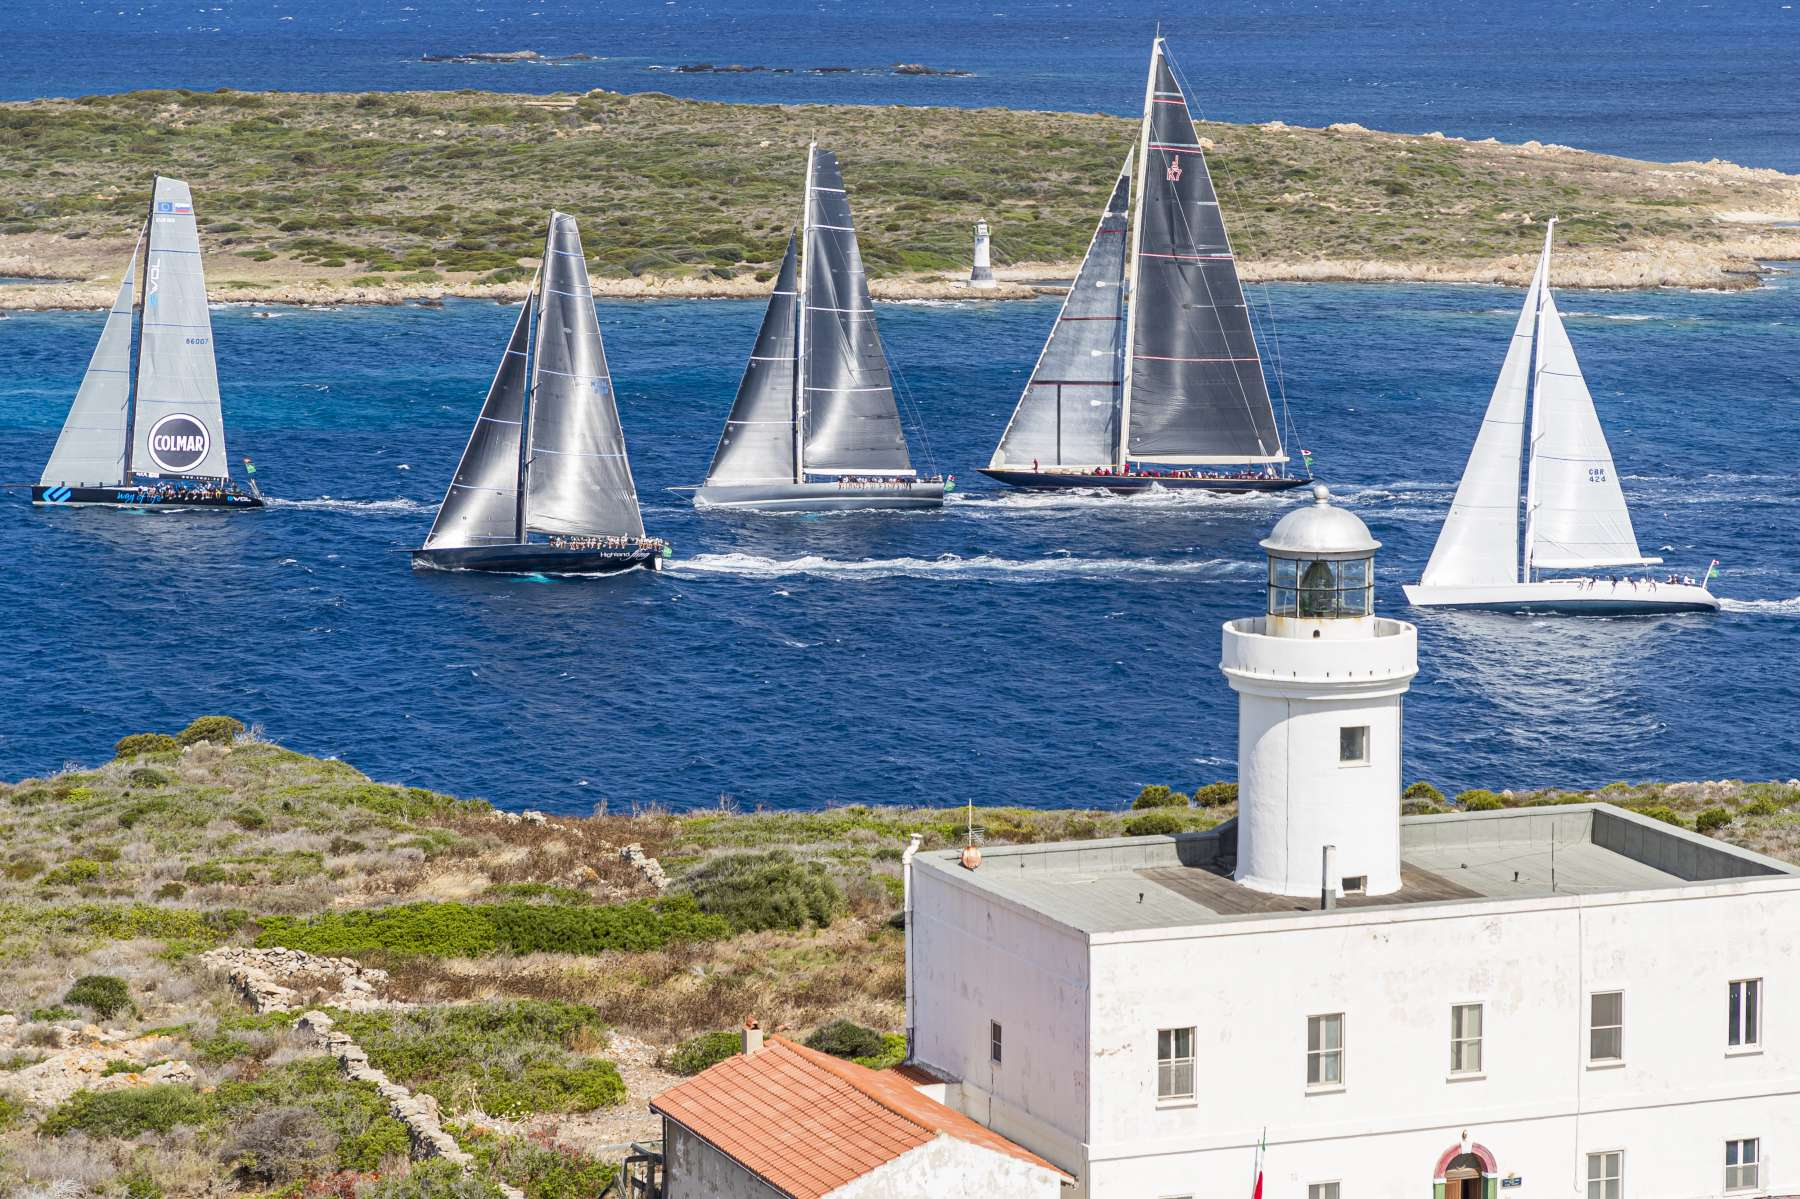 YCCS postpones opening and is ready for 2020 season - NEWS - Yacht Club Costa Smeralda